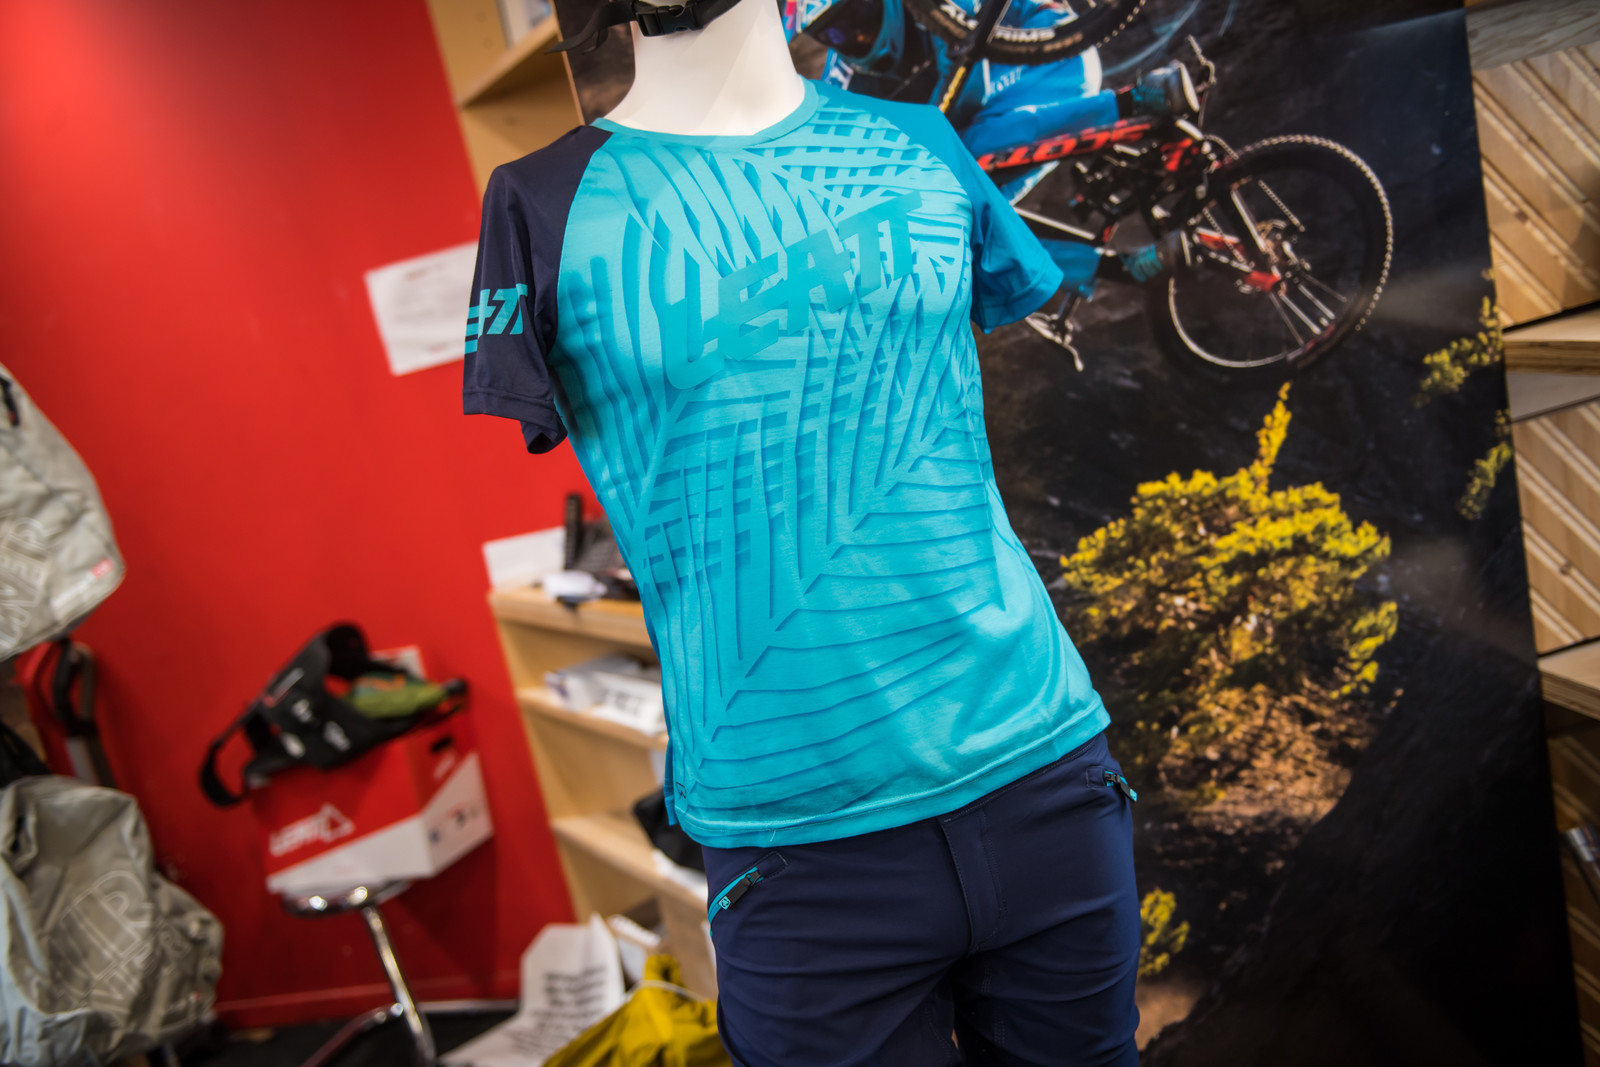 New Leatt Apparel for Women - PIT BITS - 2019 Crankworx Whistler Bikes and Tech - Mountain Biking Pictures - Vital MTB